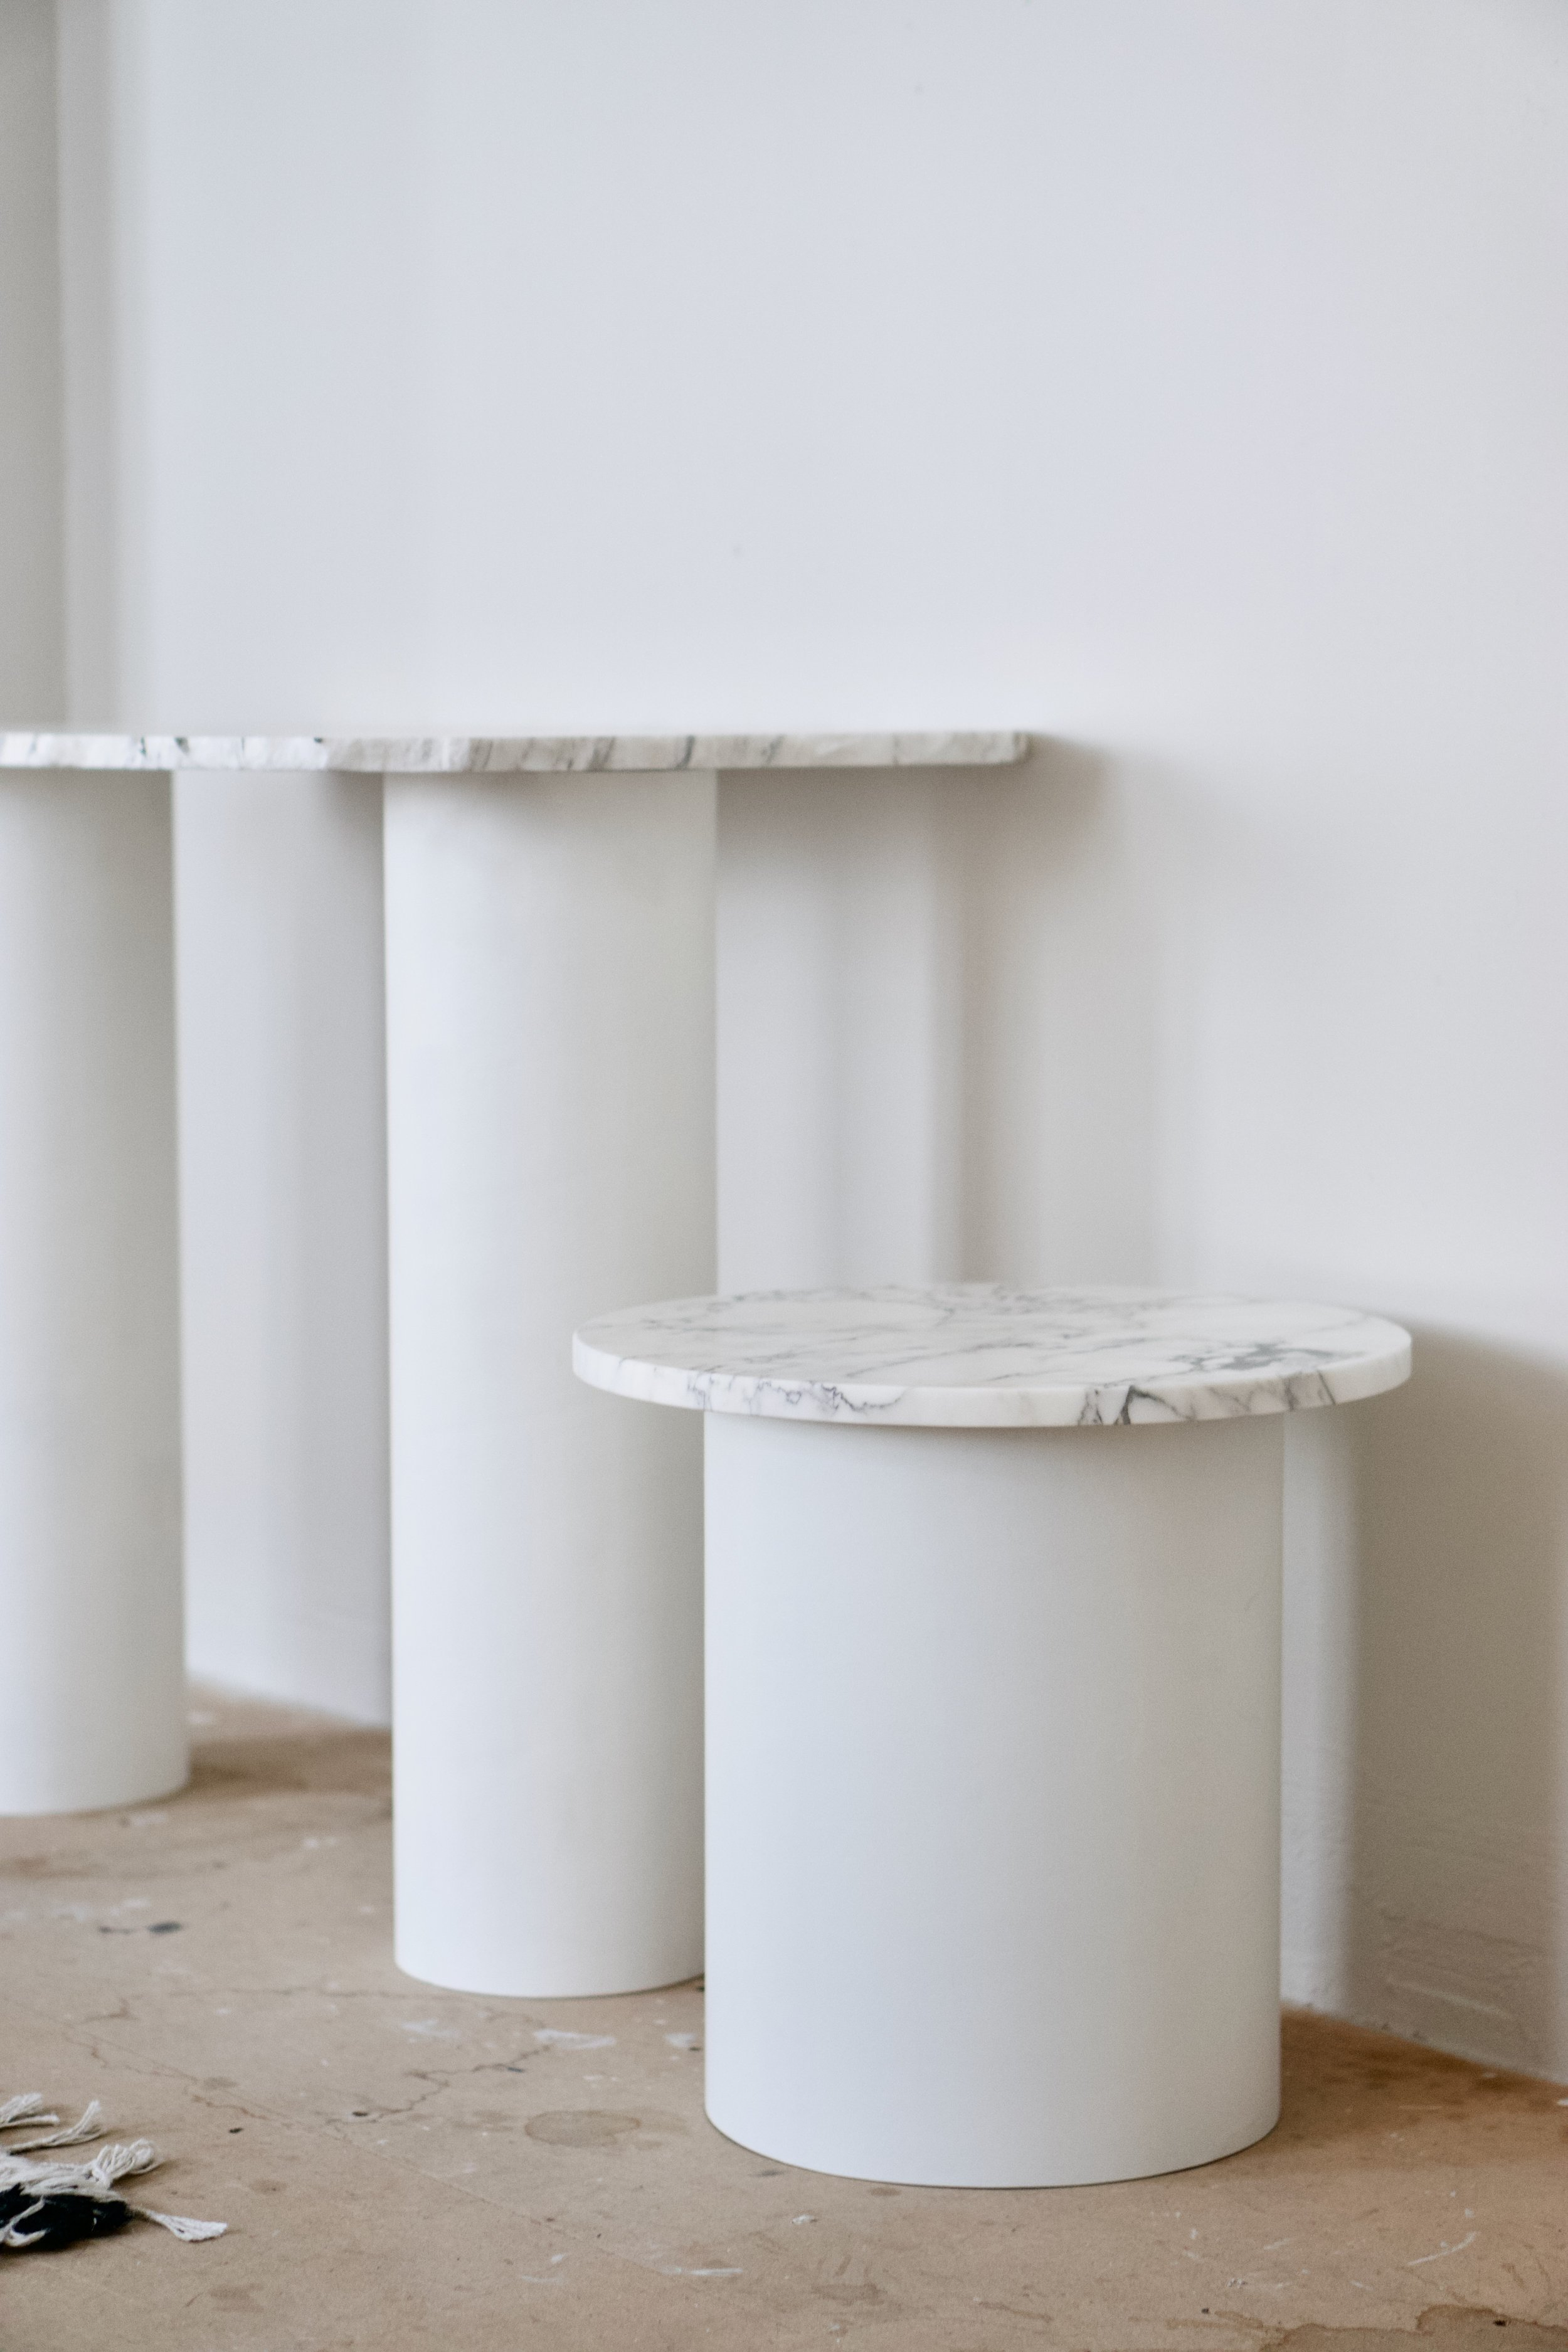 Circular table legs available in two dimensions, D 15 and D 25.